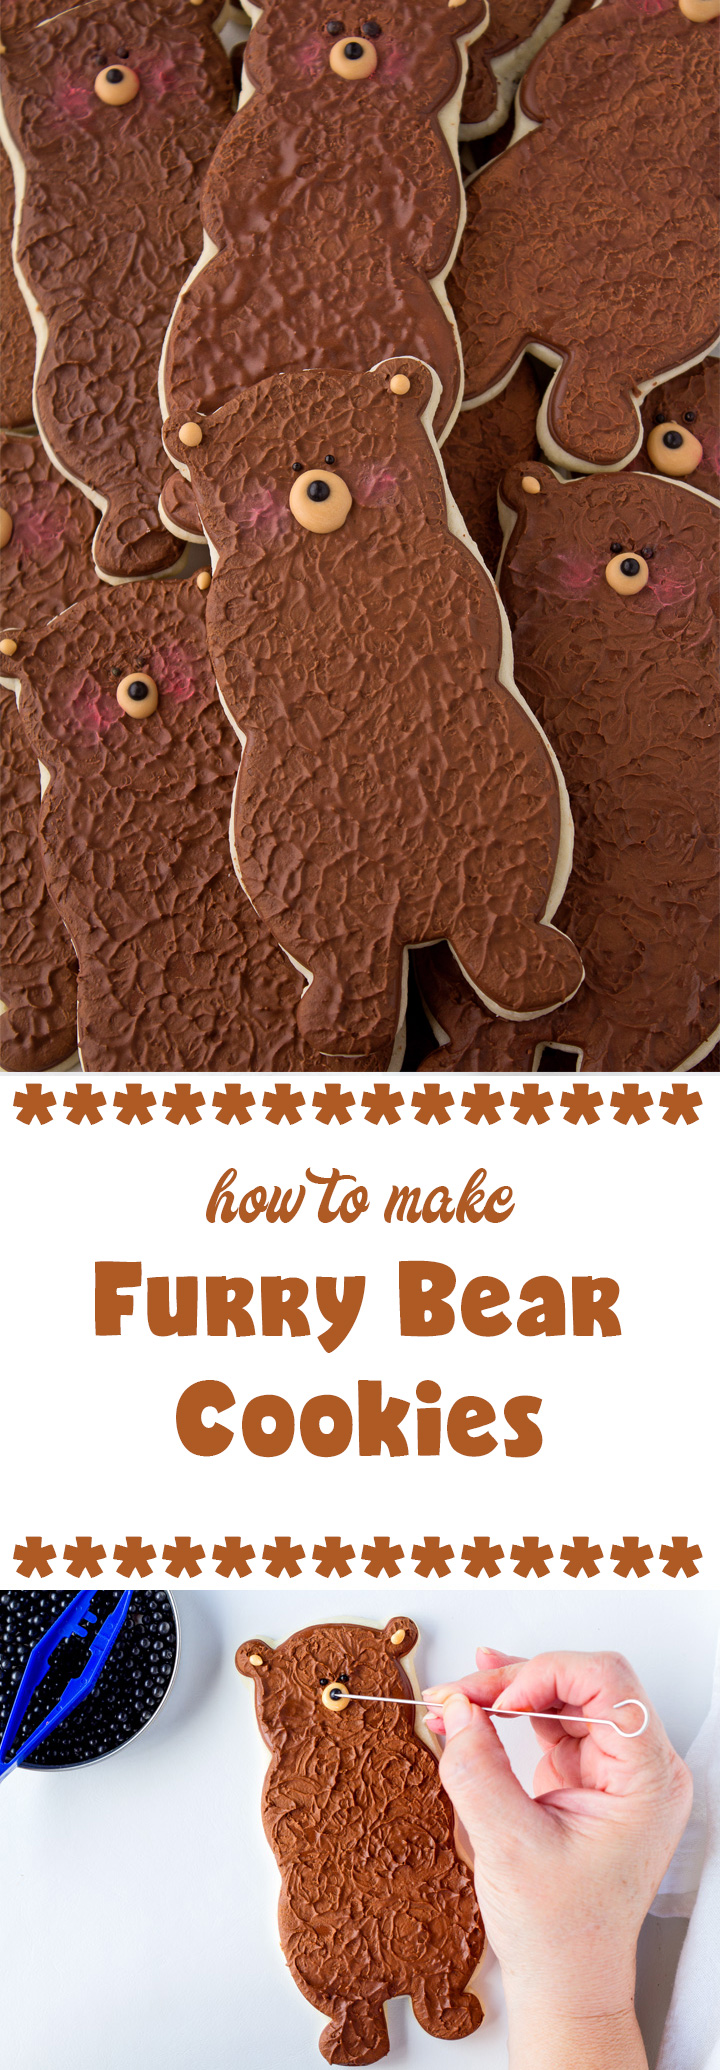 How to Make Fun Furry Bear Cookies | The Bearfoot Baker